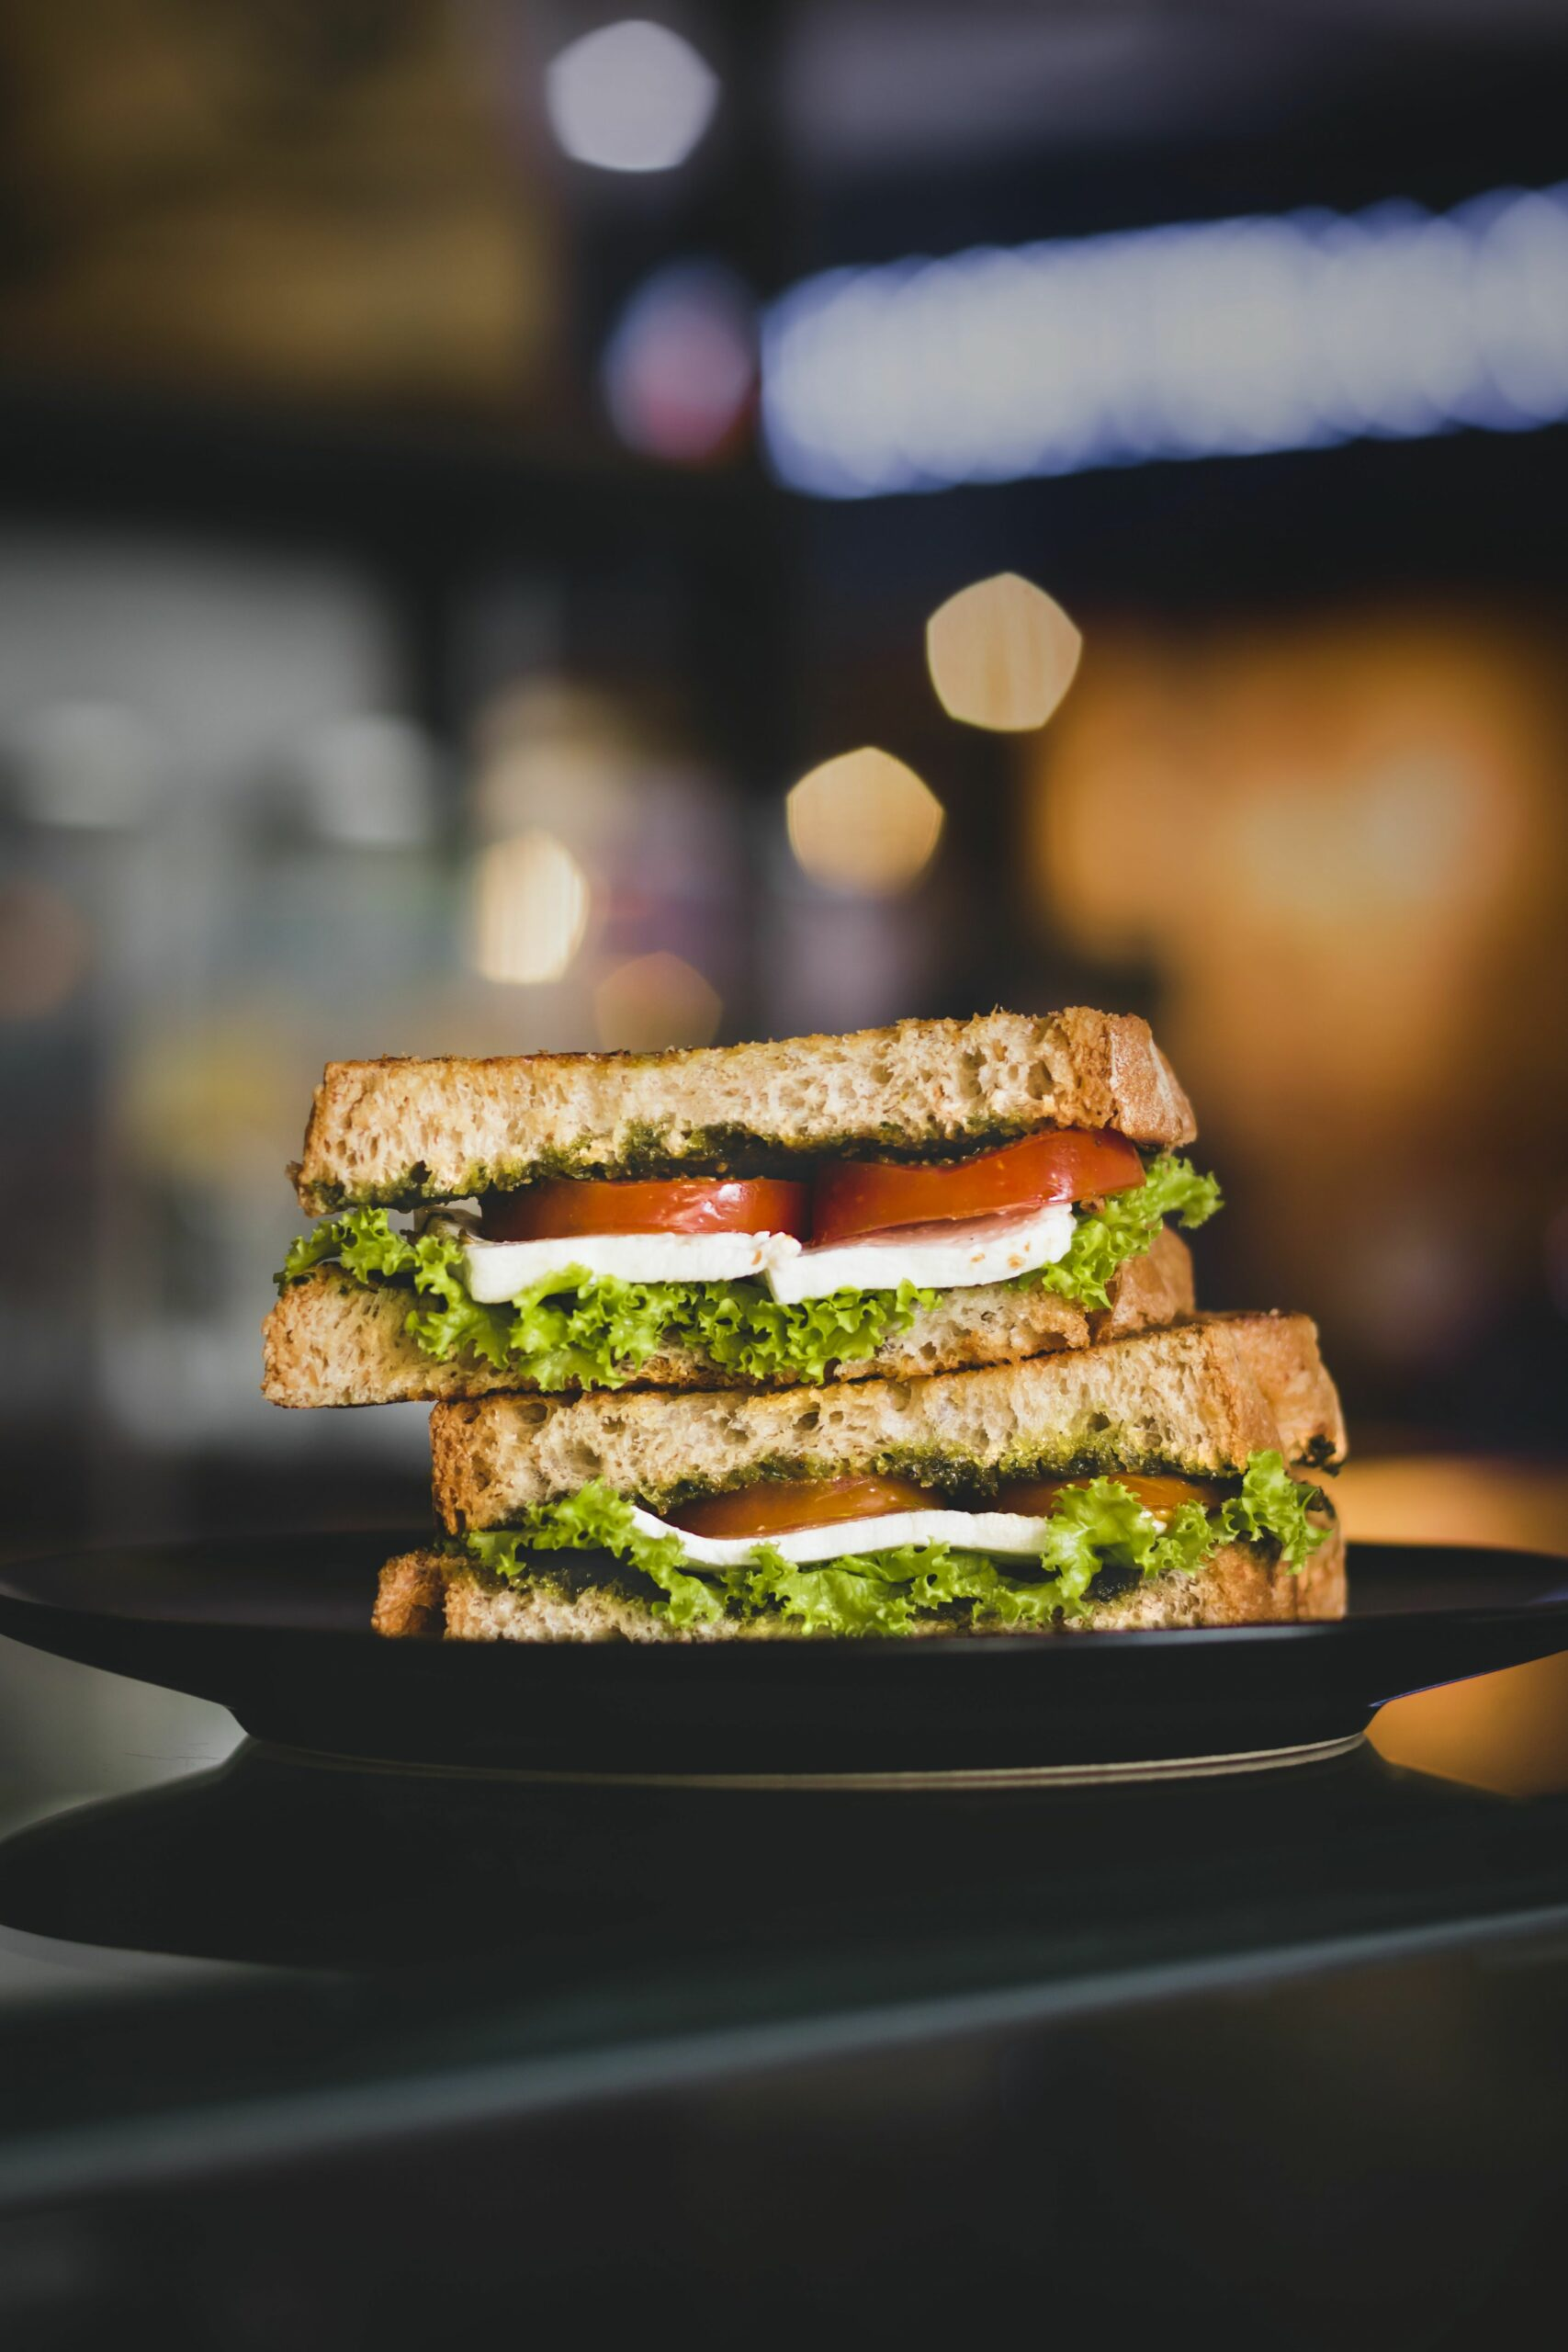 10+ Sandwich Pictures [HD] | Download Free Images on Unsplash - Sandwich Recipes Download